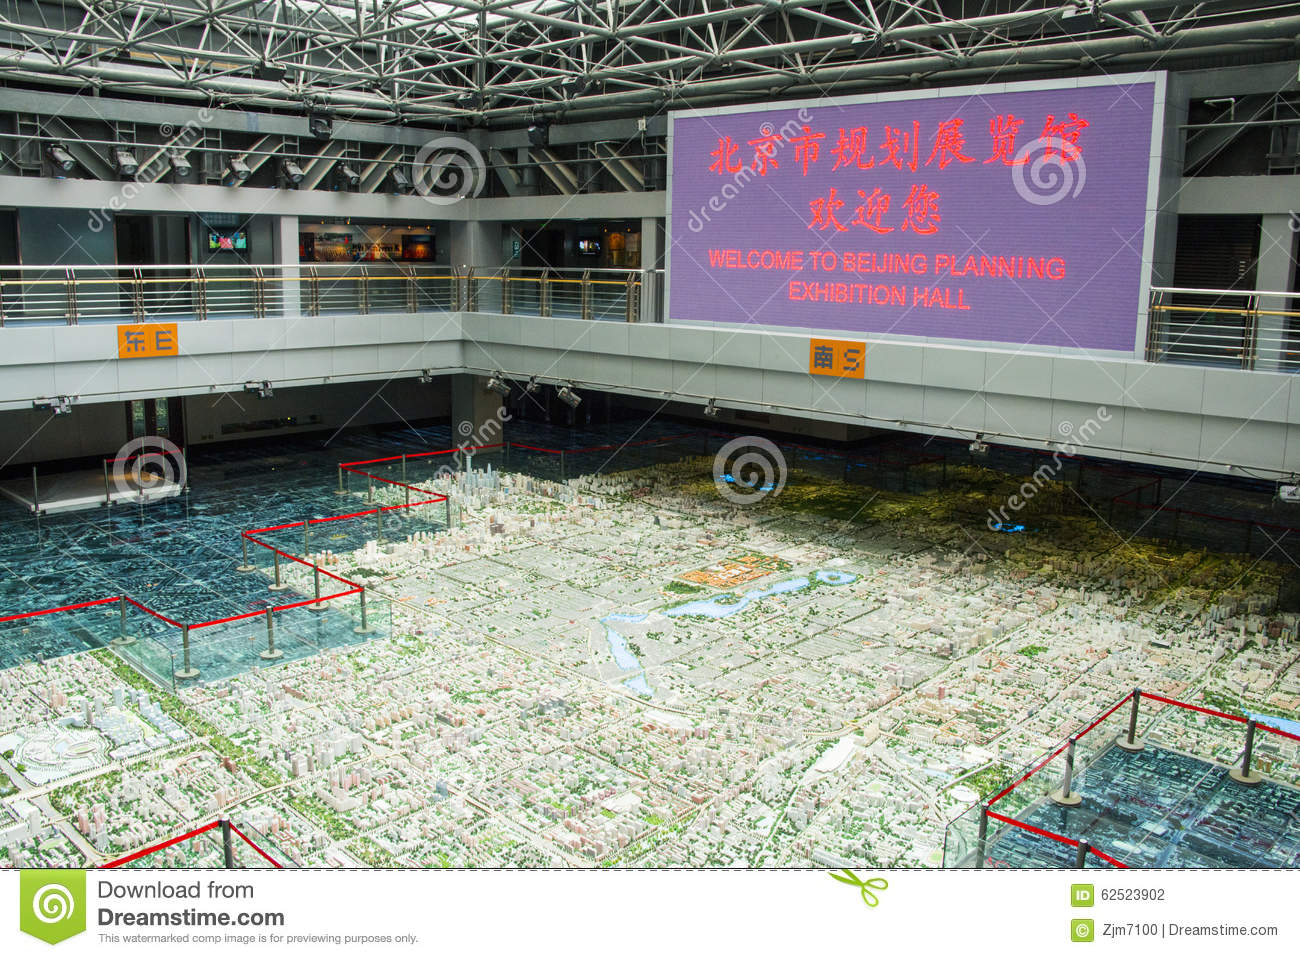 Hall of Central Harmony Běijīng, Asia China, Beijing, Planning Exhibition Hall, Urban Planning ...